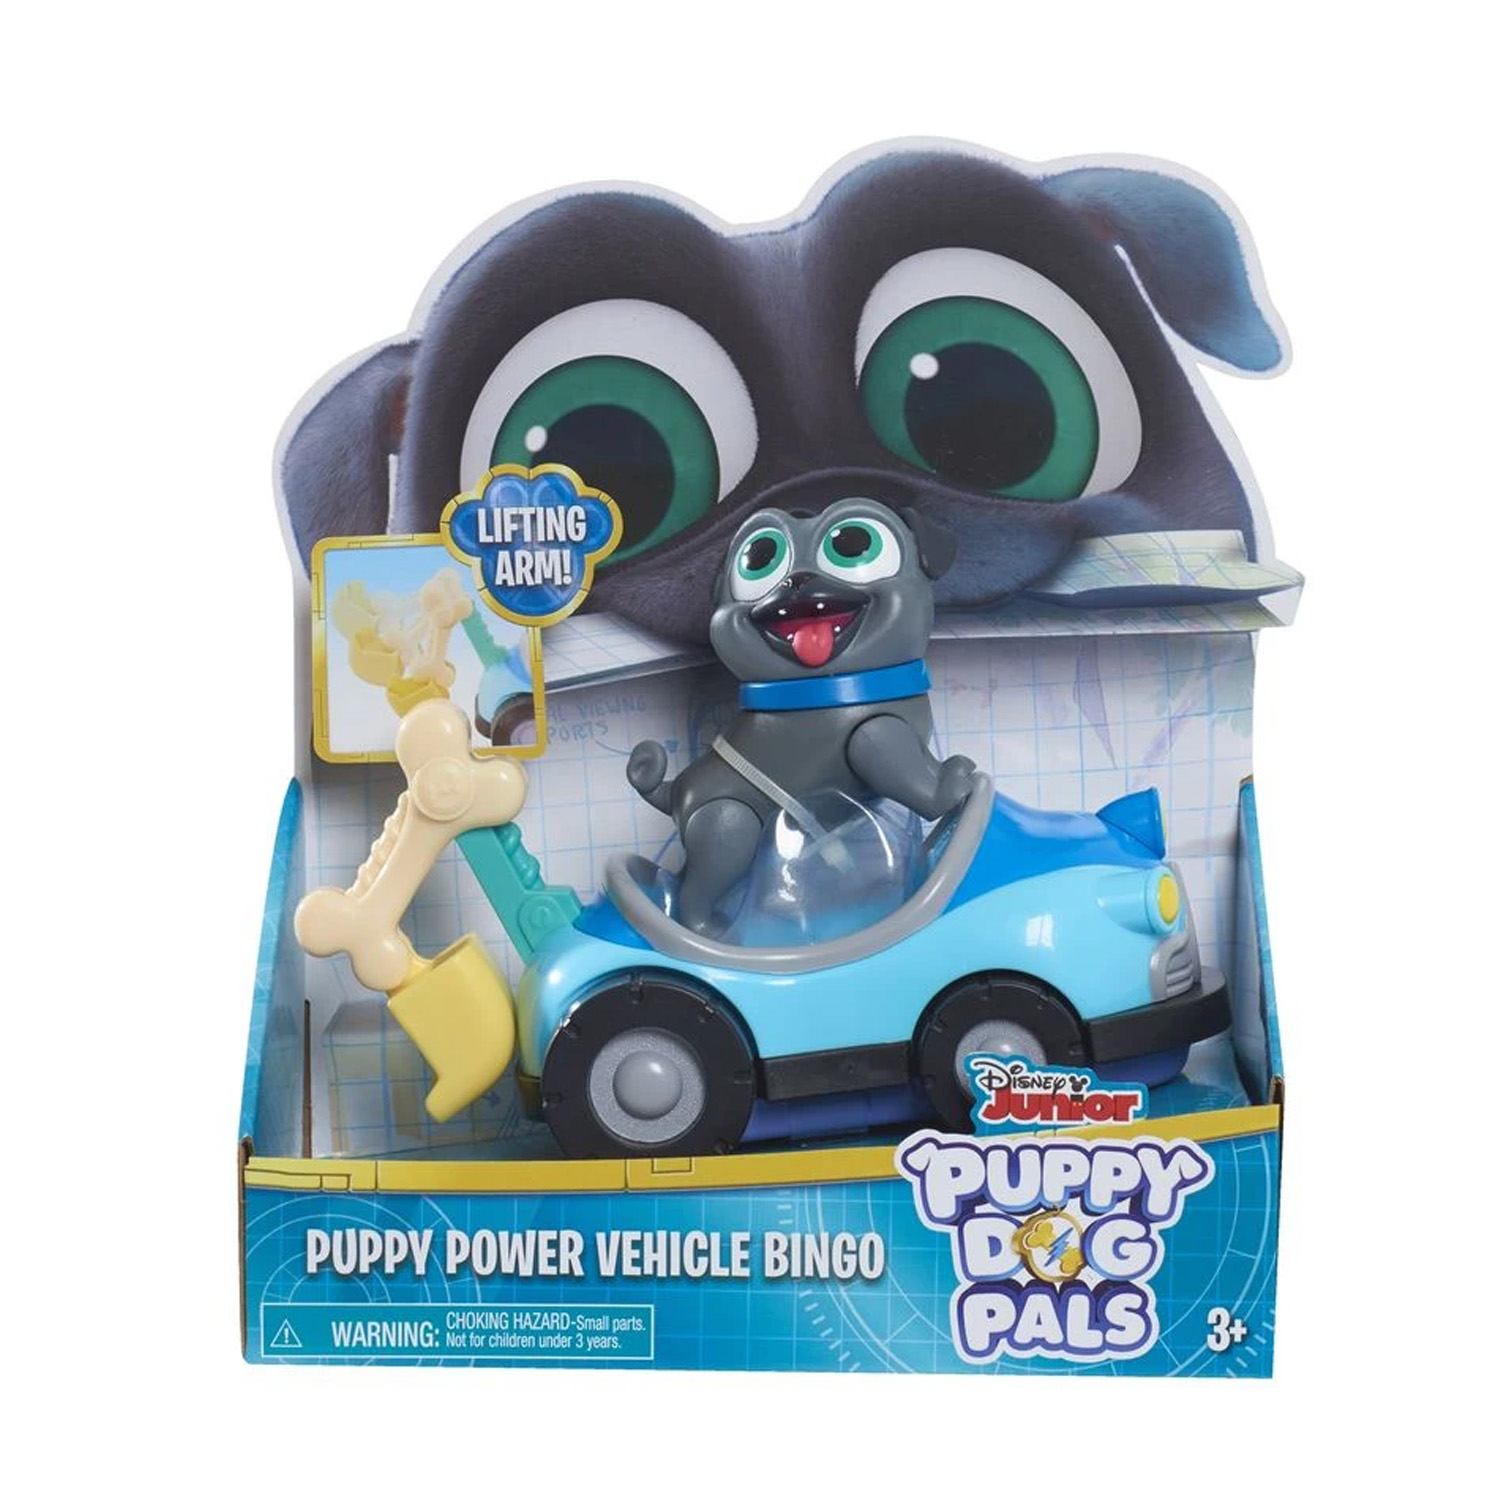 Disney Puppy Dog Pals Puppy Power Vehicle Bingo